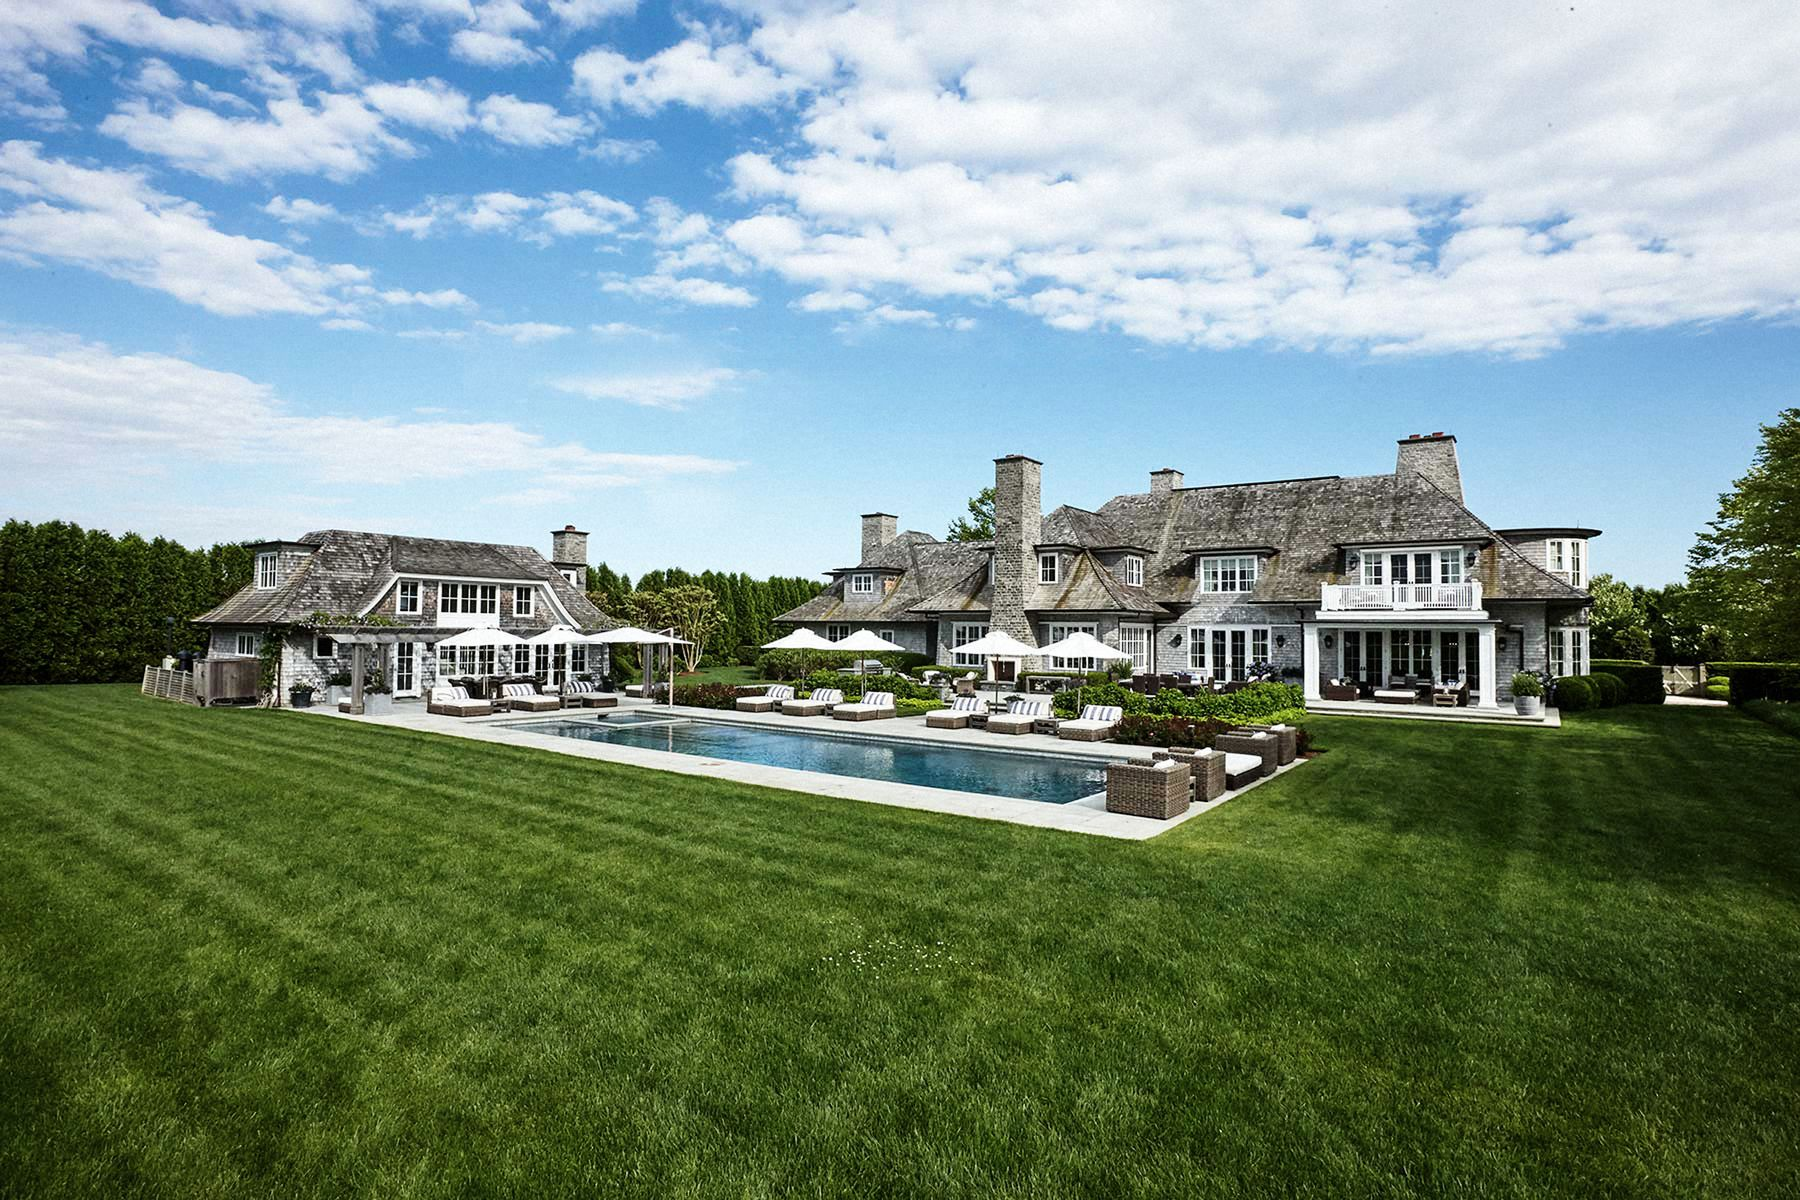 Single Family Home for Active at SAGAPONACK SOUTH COMPOUND ON 7.5 ACRES Sagaponack, New York 11962 United States